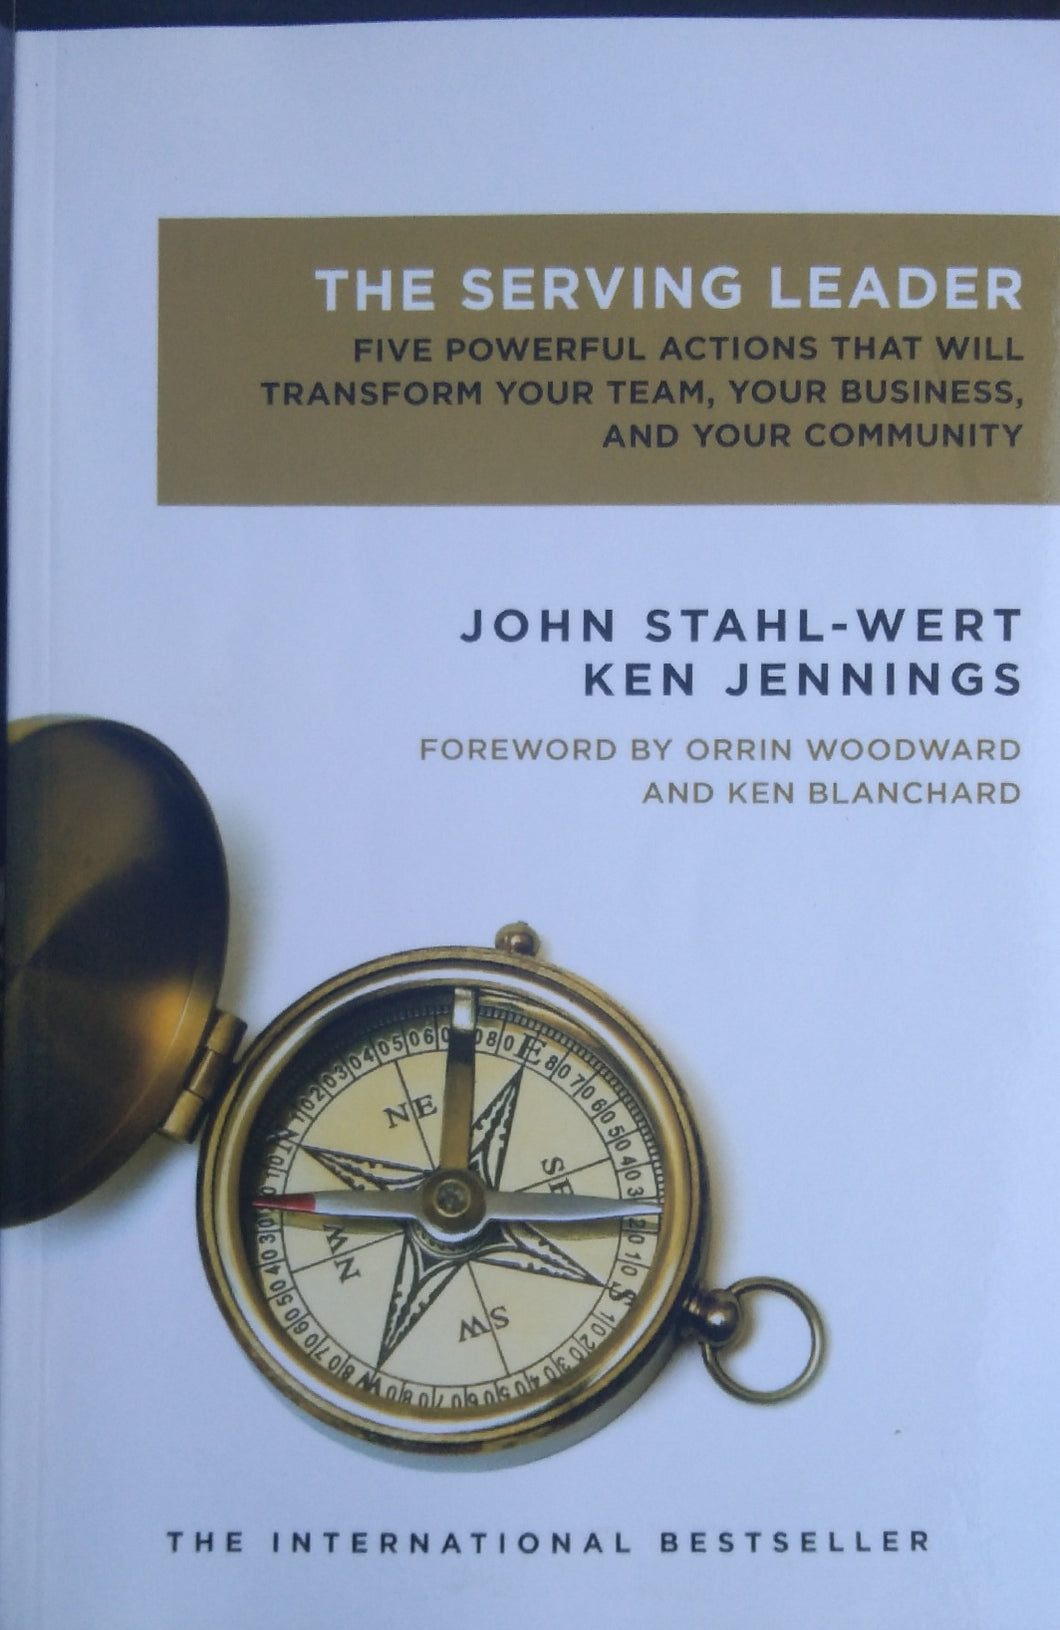 The Serving Leader by John Stahl-Werr